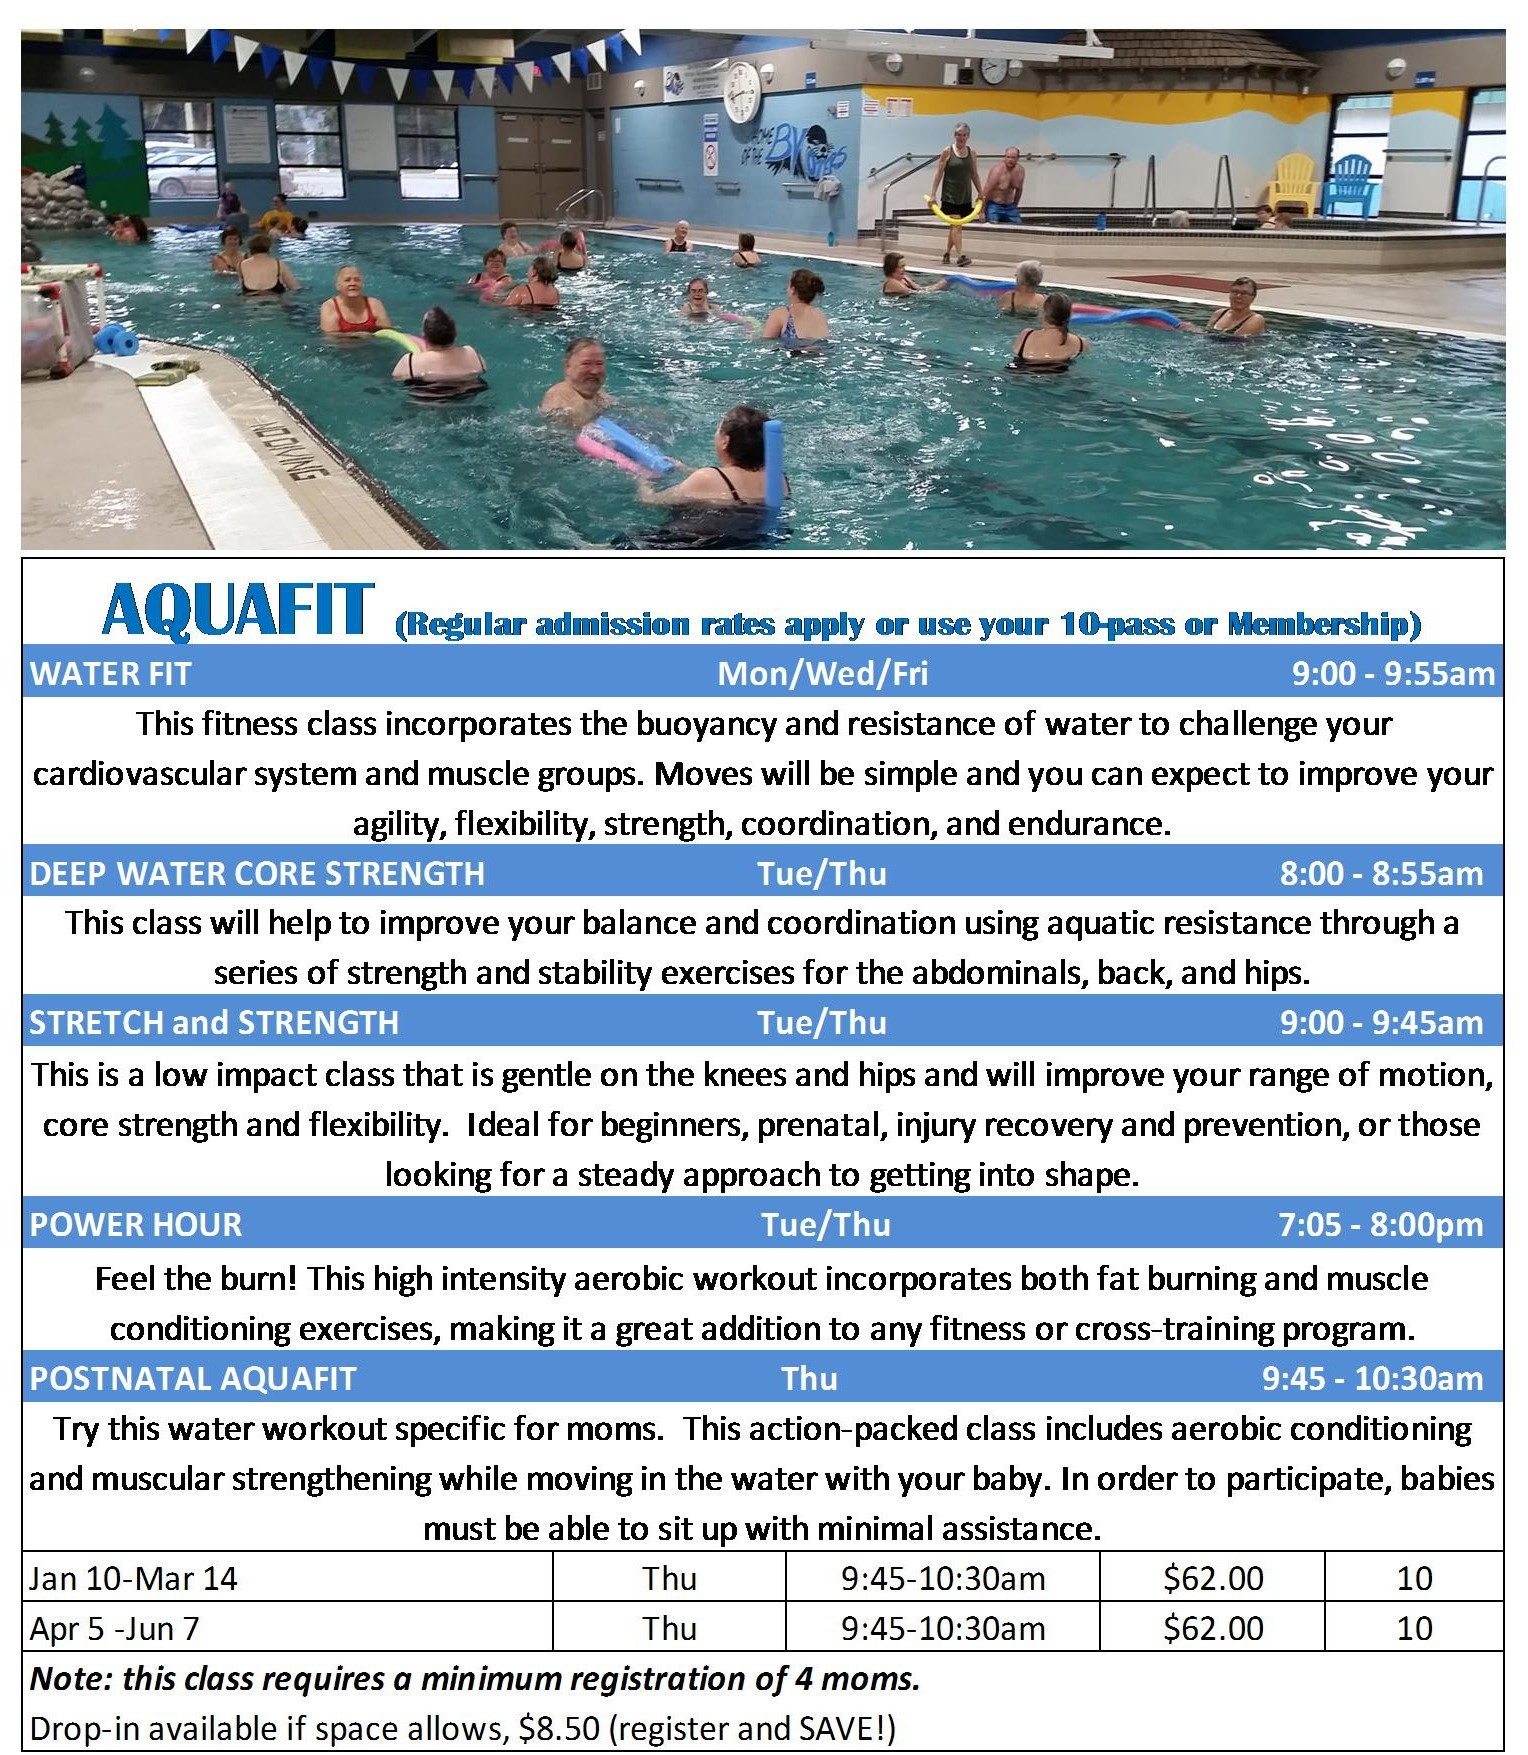 Winter and Spring 2019 Aquafit schedule